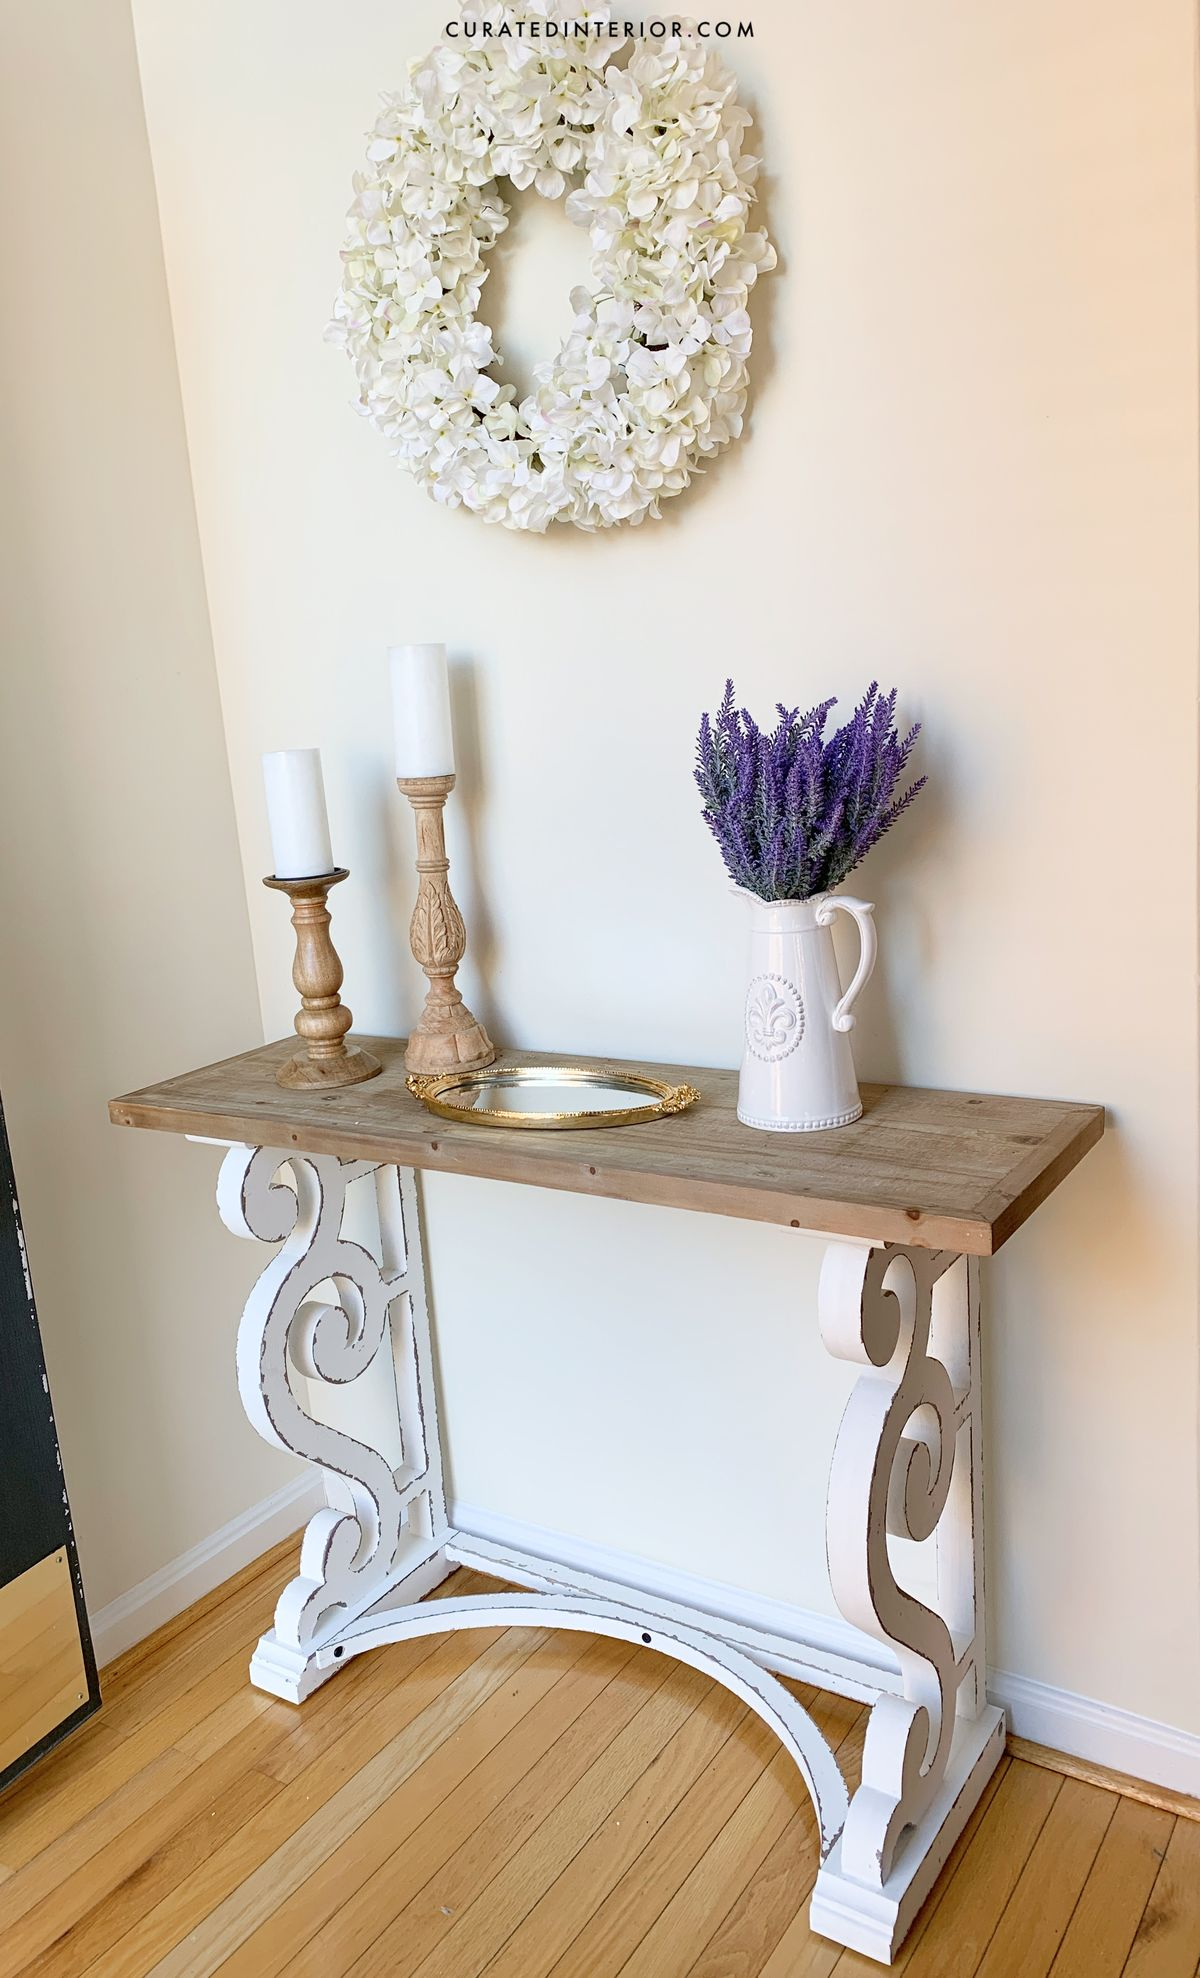 French Country Entryway with Distressed Wood Console Table